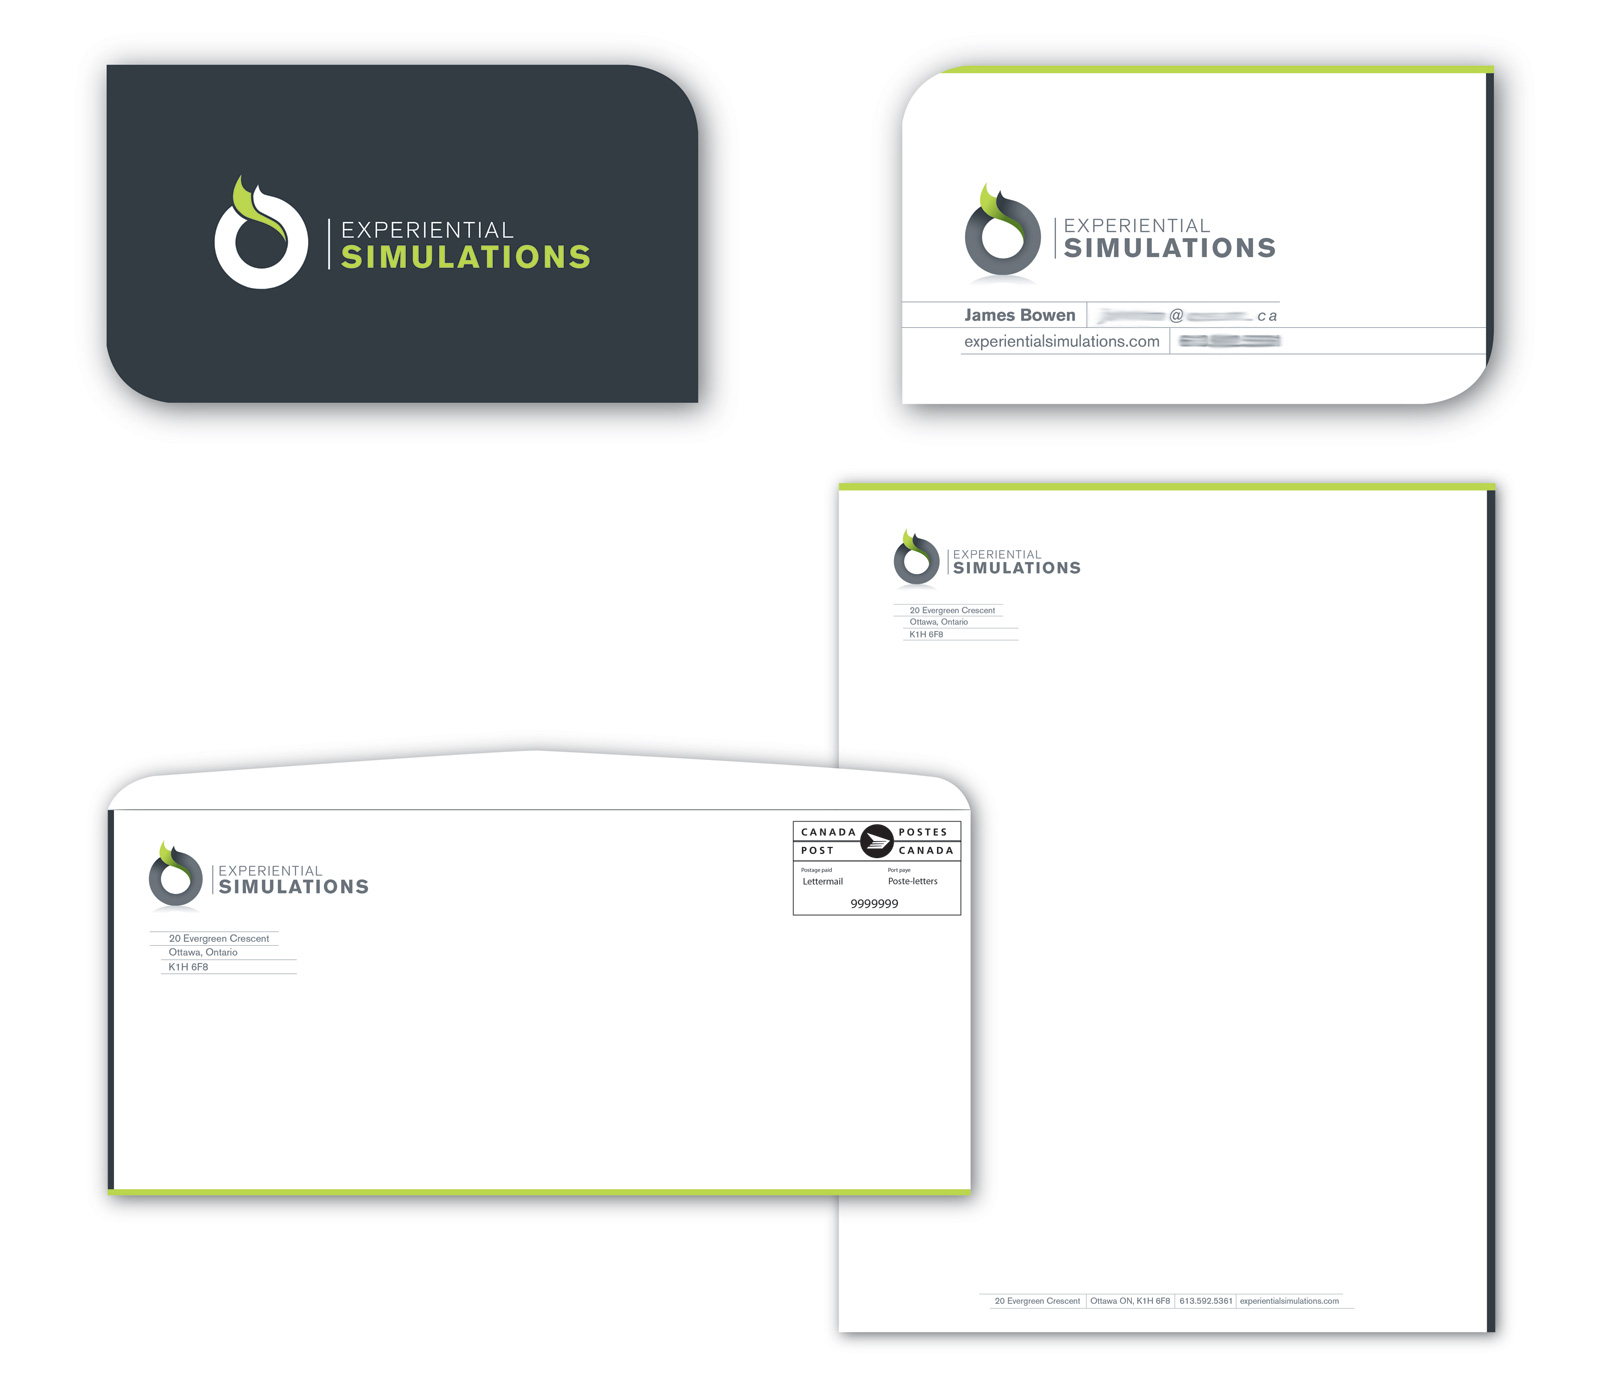 Experiential Simulations Stationery